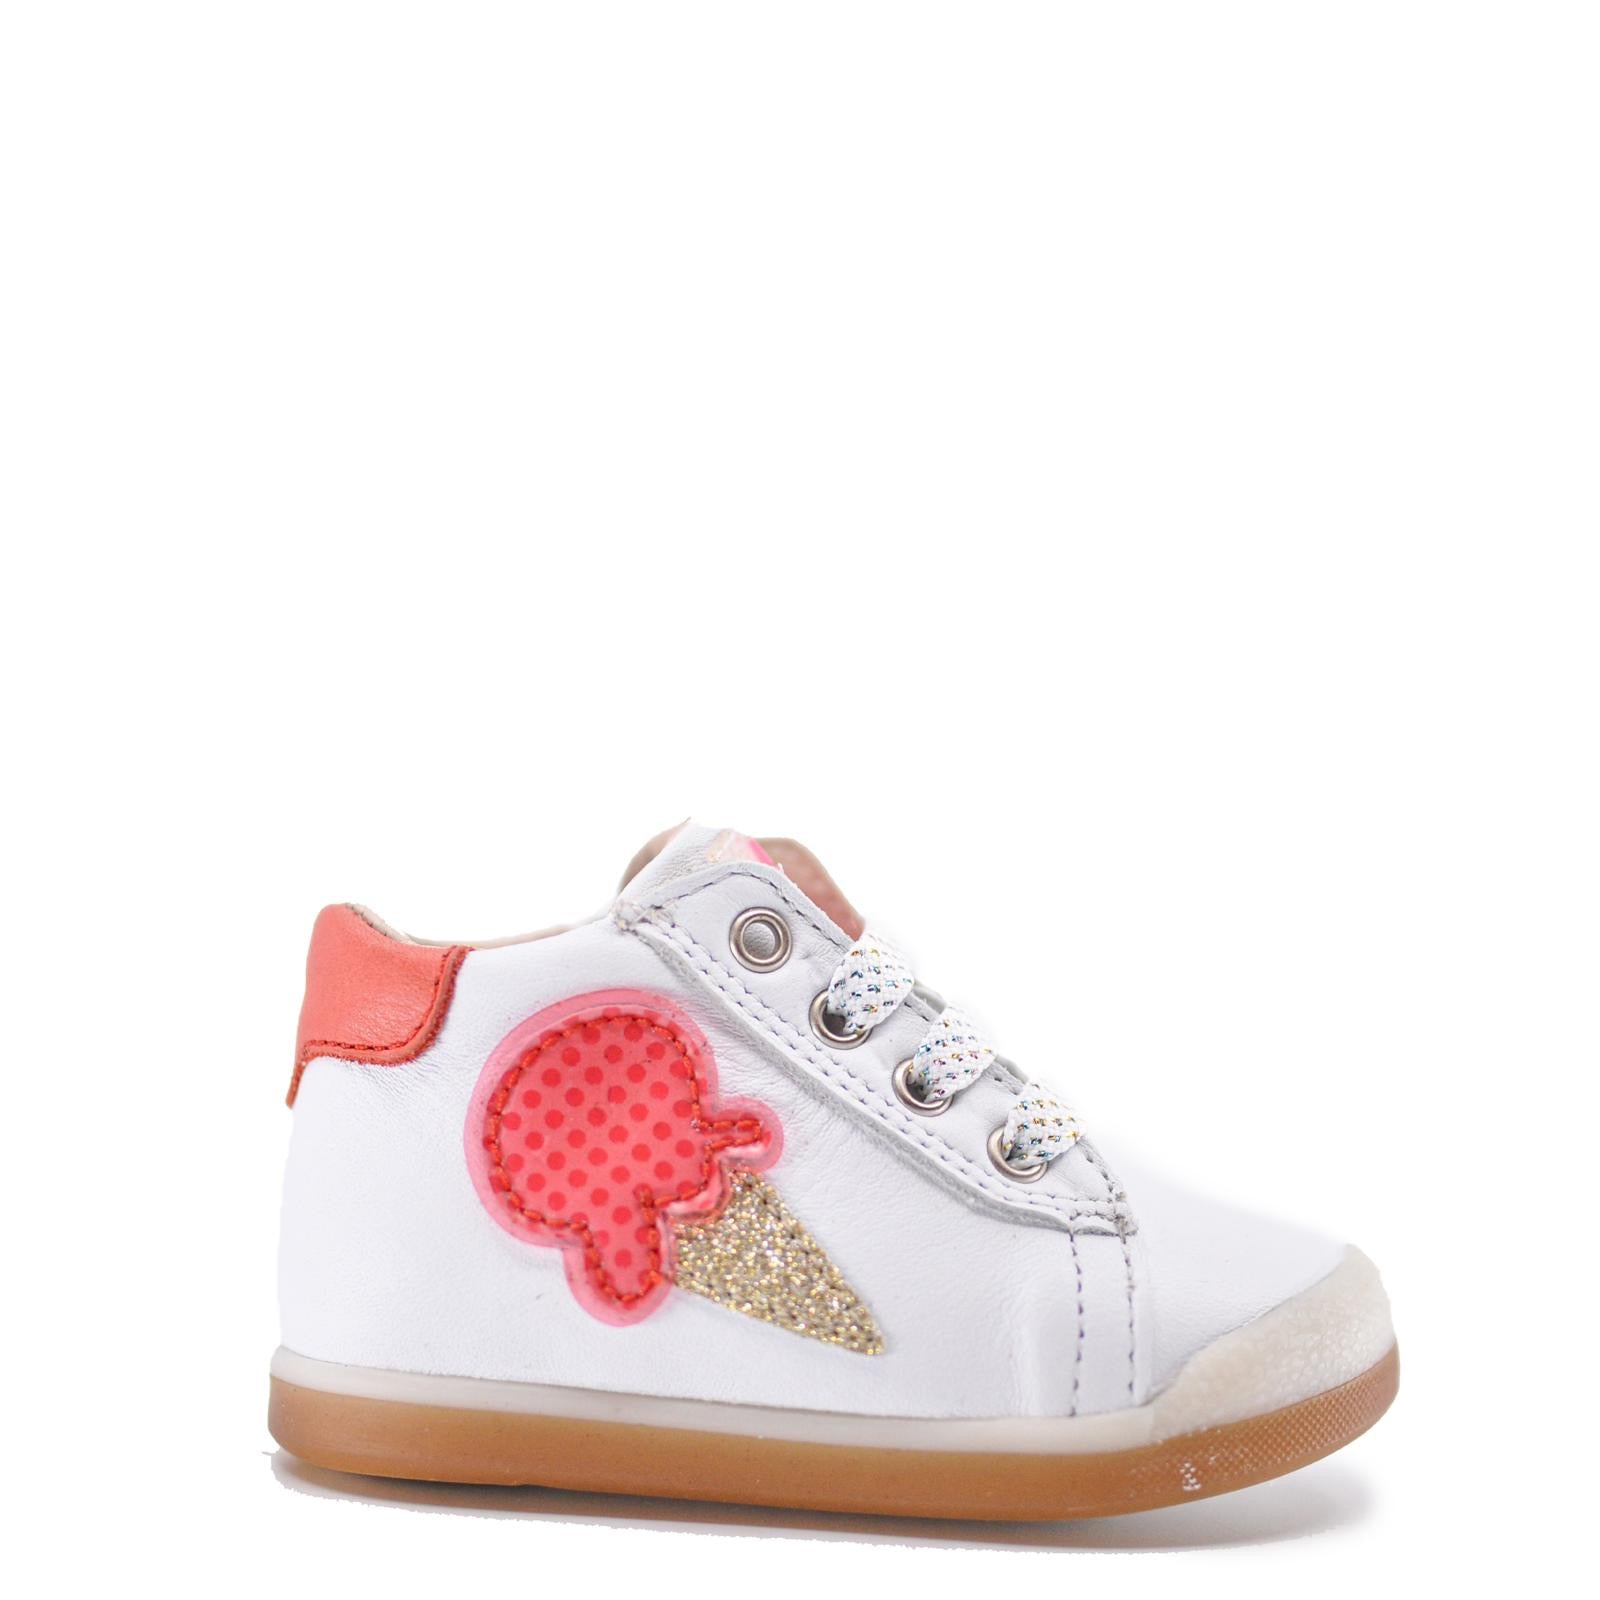 Acebos Ice Cream Baby Sneaker-Tassel Children Shoes